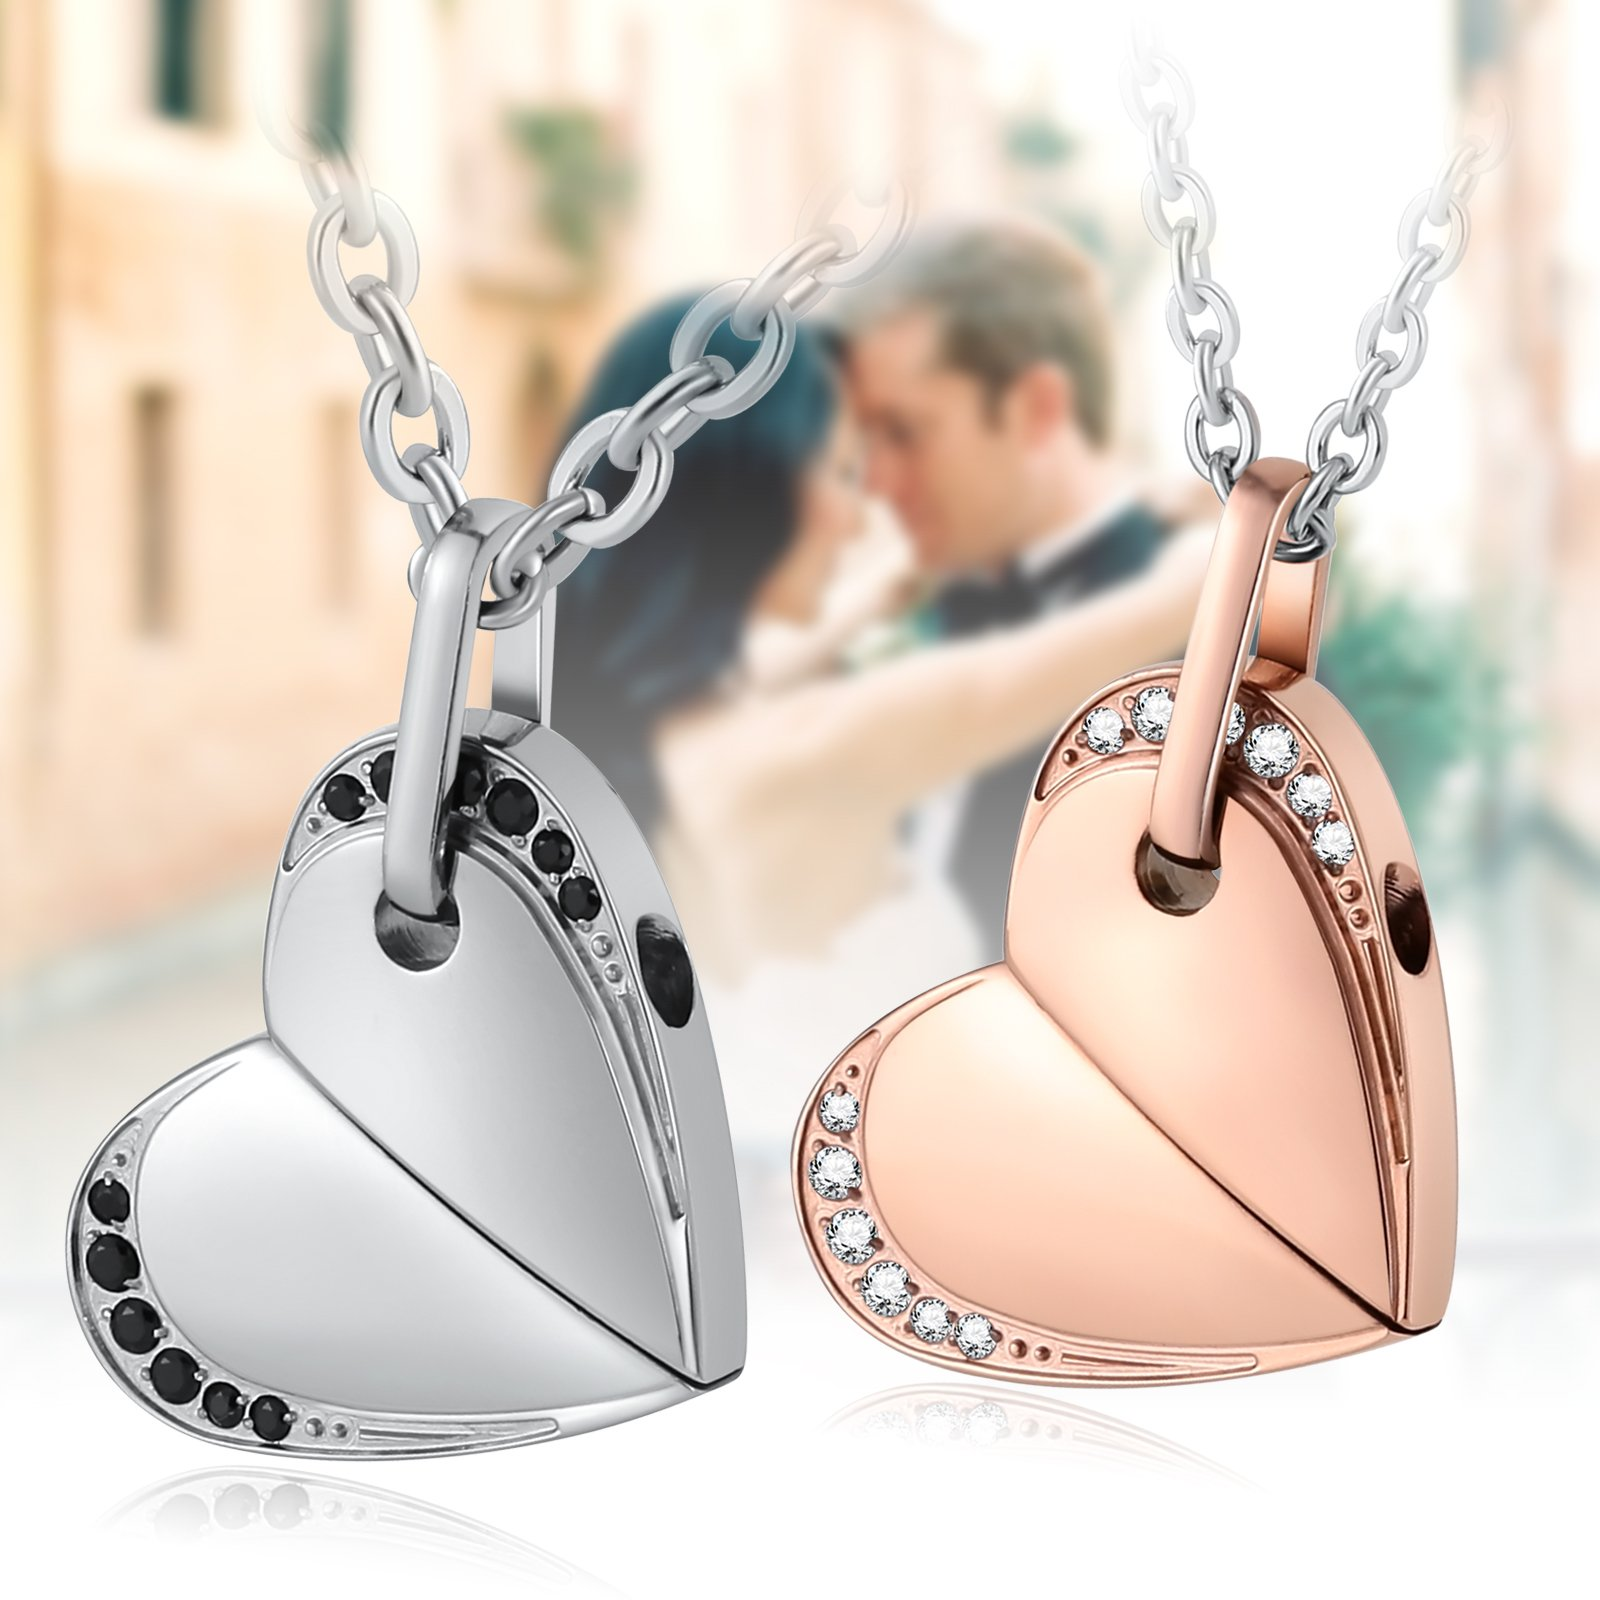 Aienid Stainless Steel Necklace for Couple Heart Move for You Rotatable Heart Pendant Necklace by Aienid (Image #6)